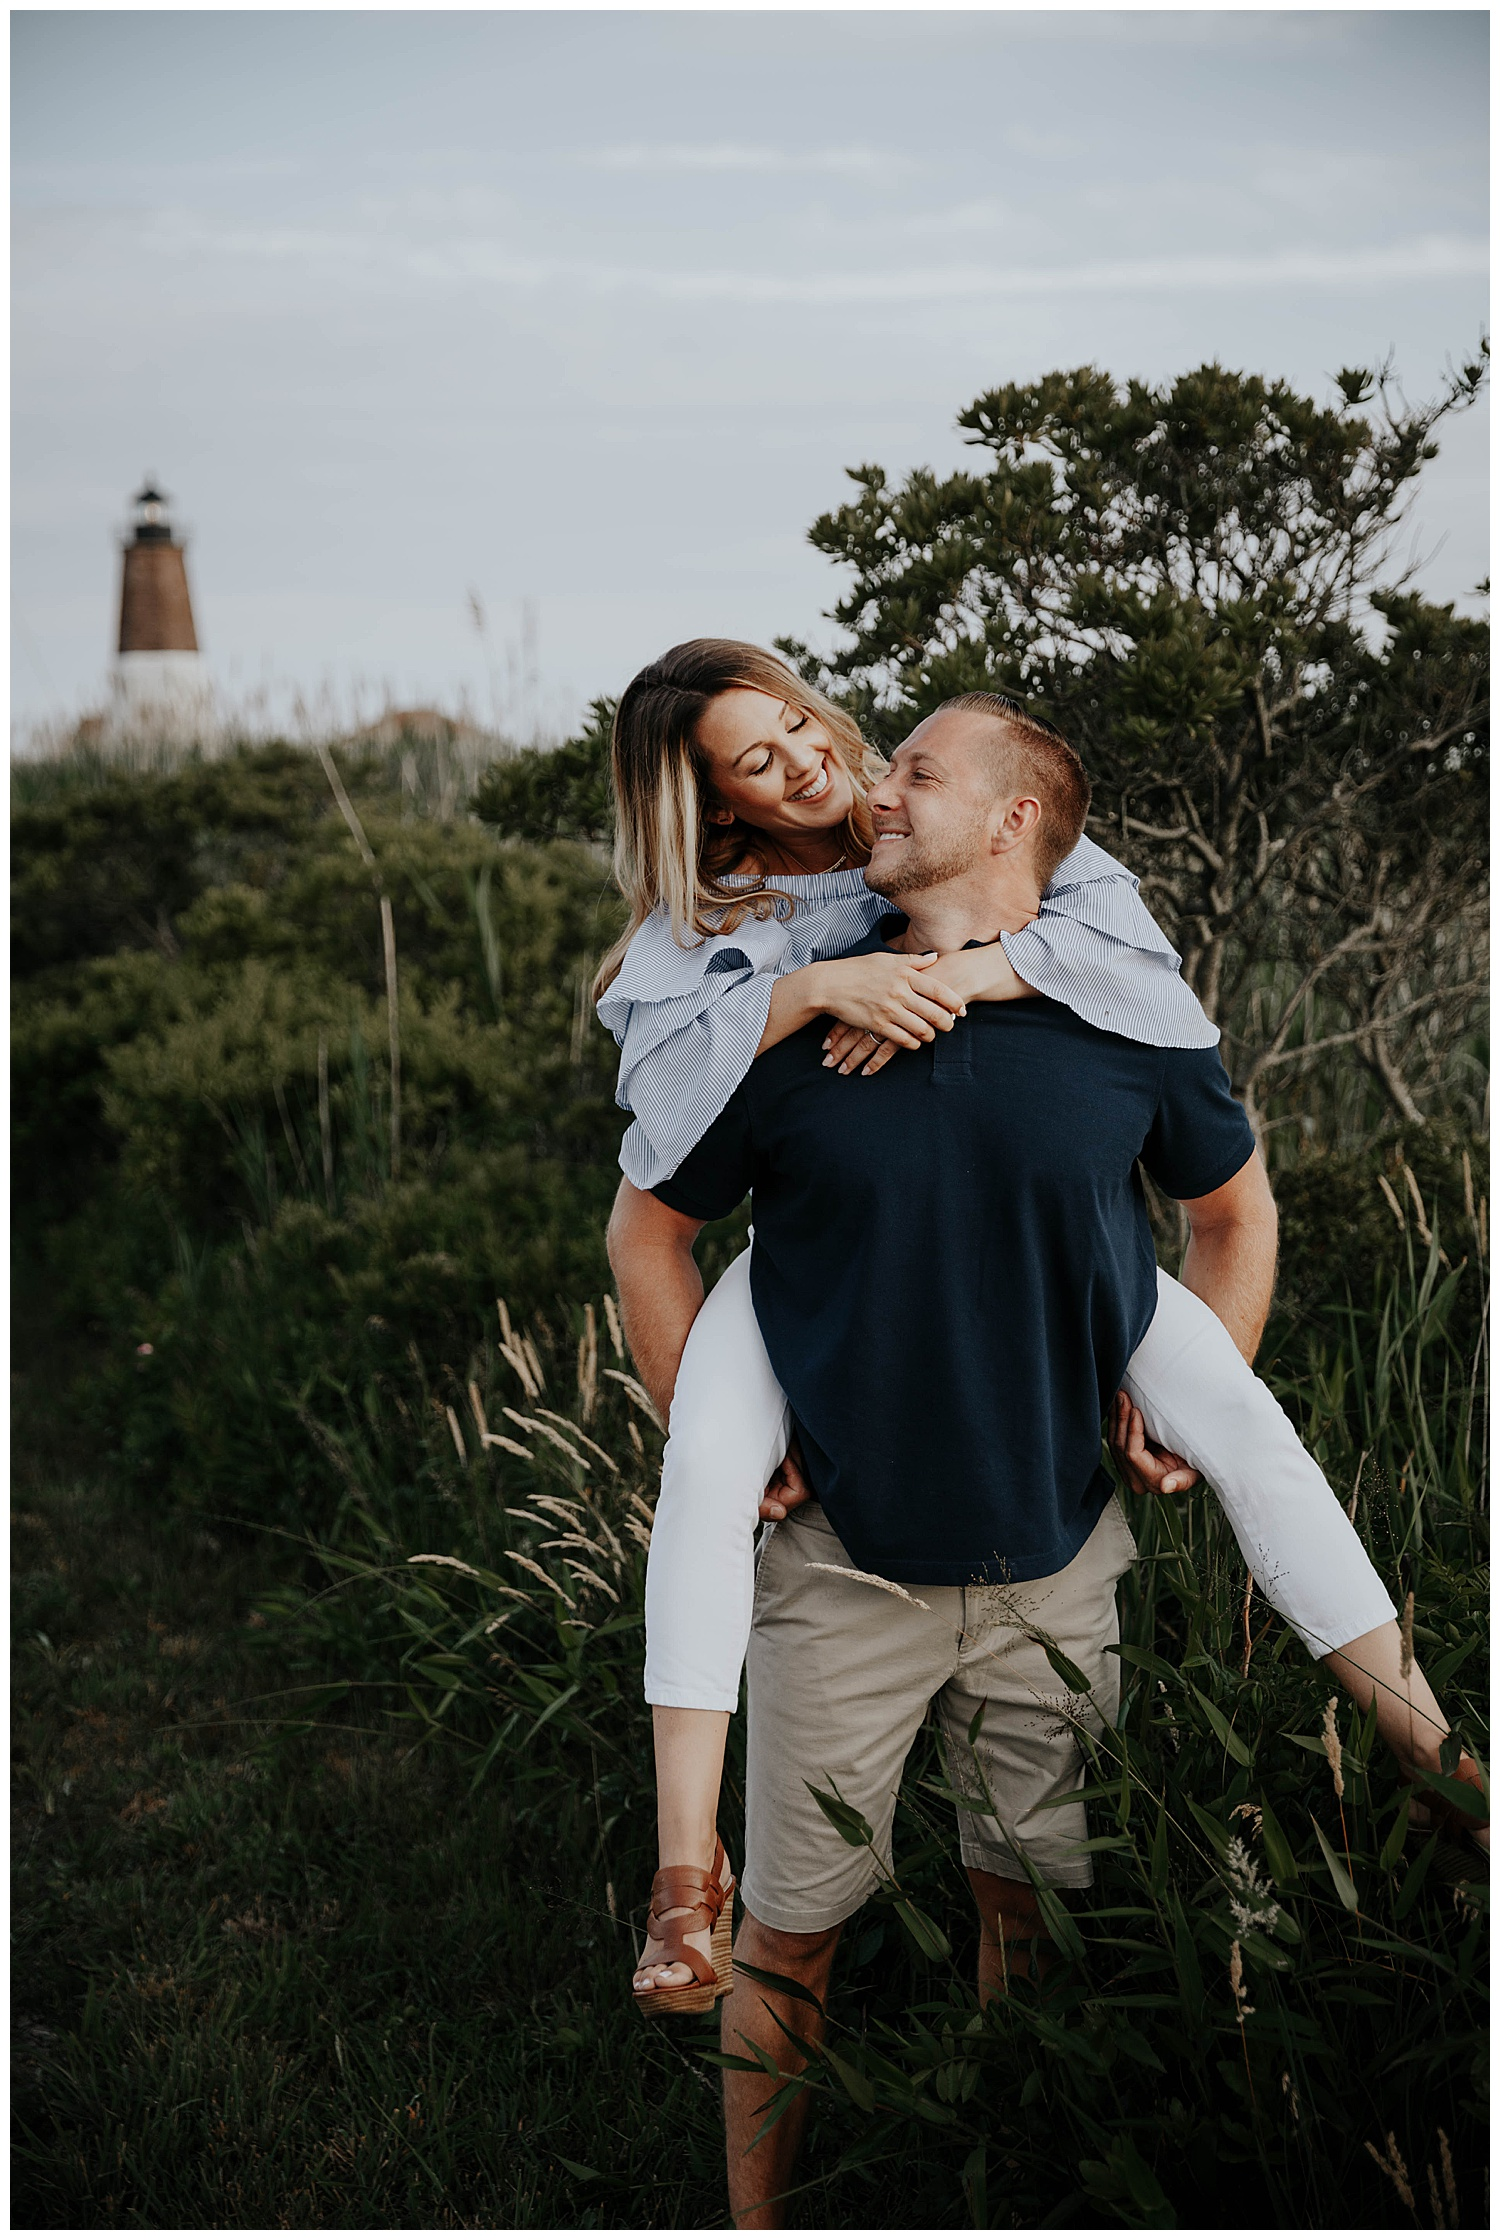 tim-katie-nautical-beach-engagement-session-beavertail-newport-rhode-island04.jpg